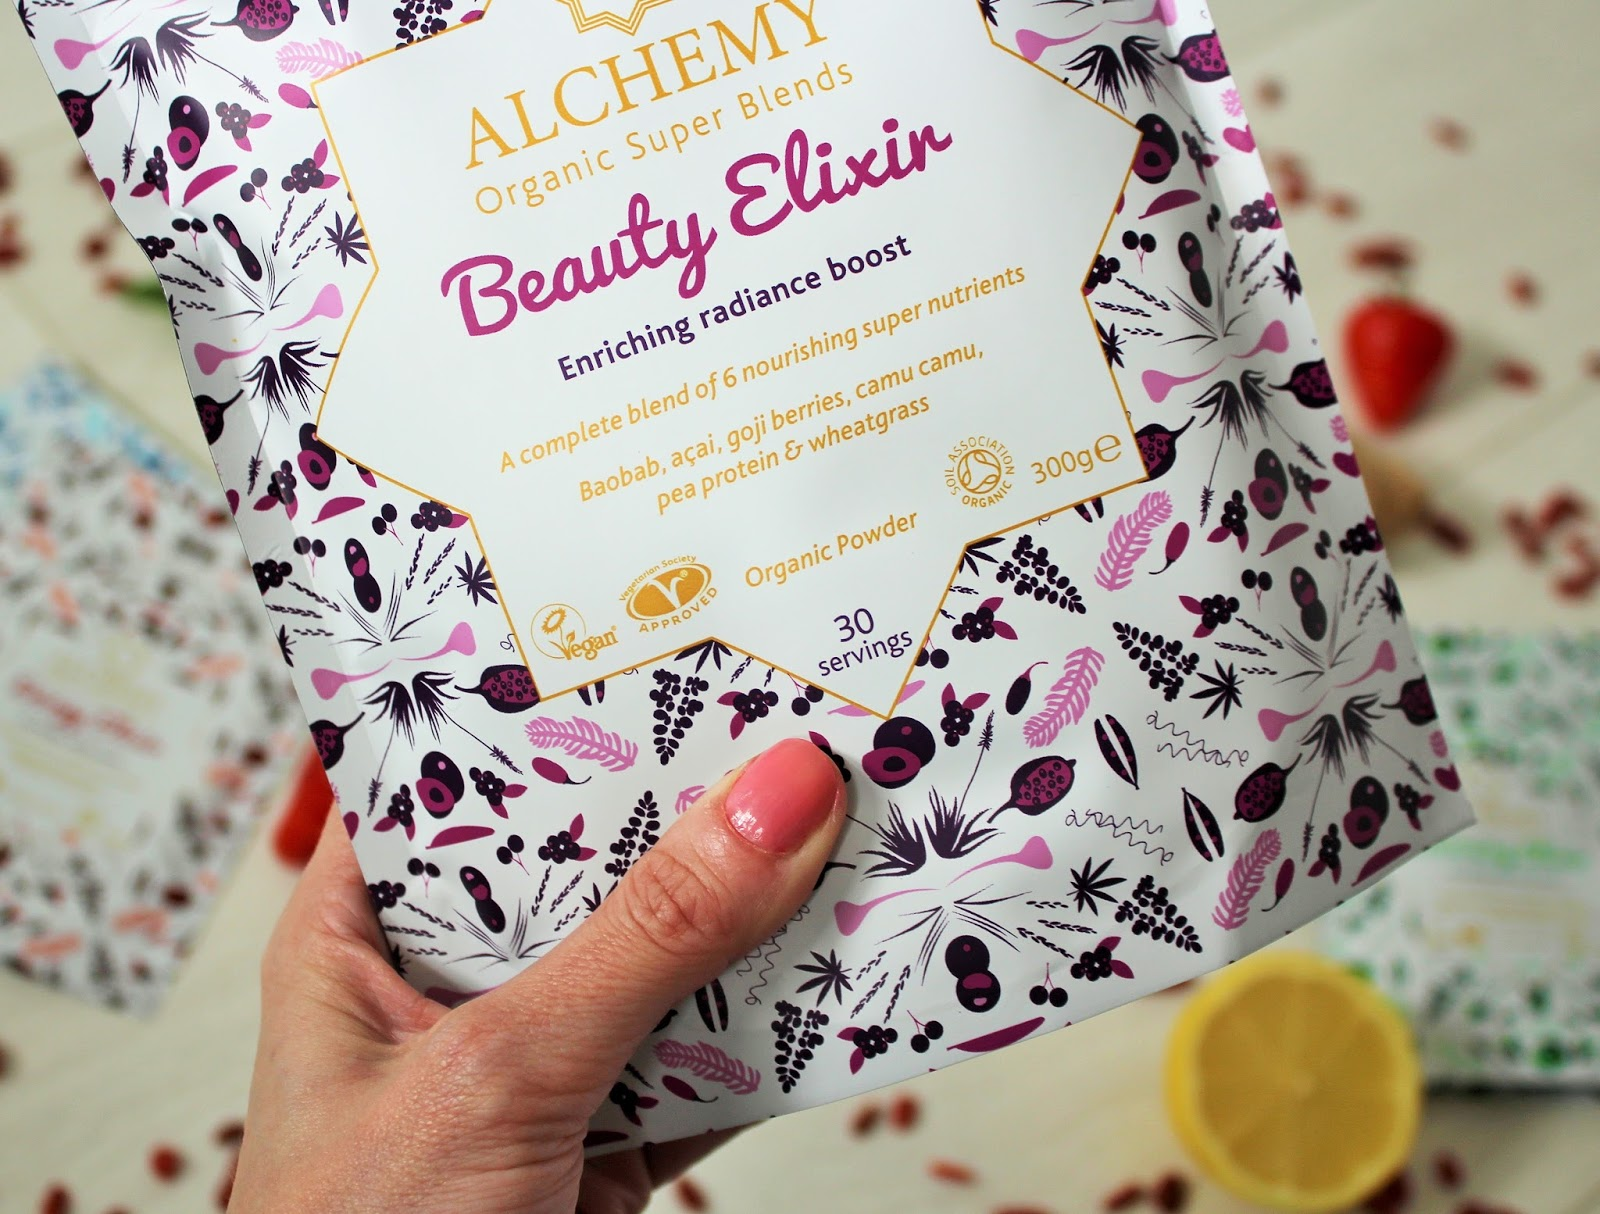 Get Summer Ready With Alchemy Super Blends Natural Supplements